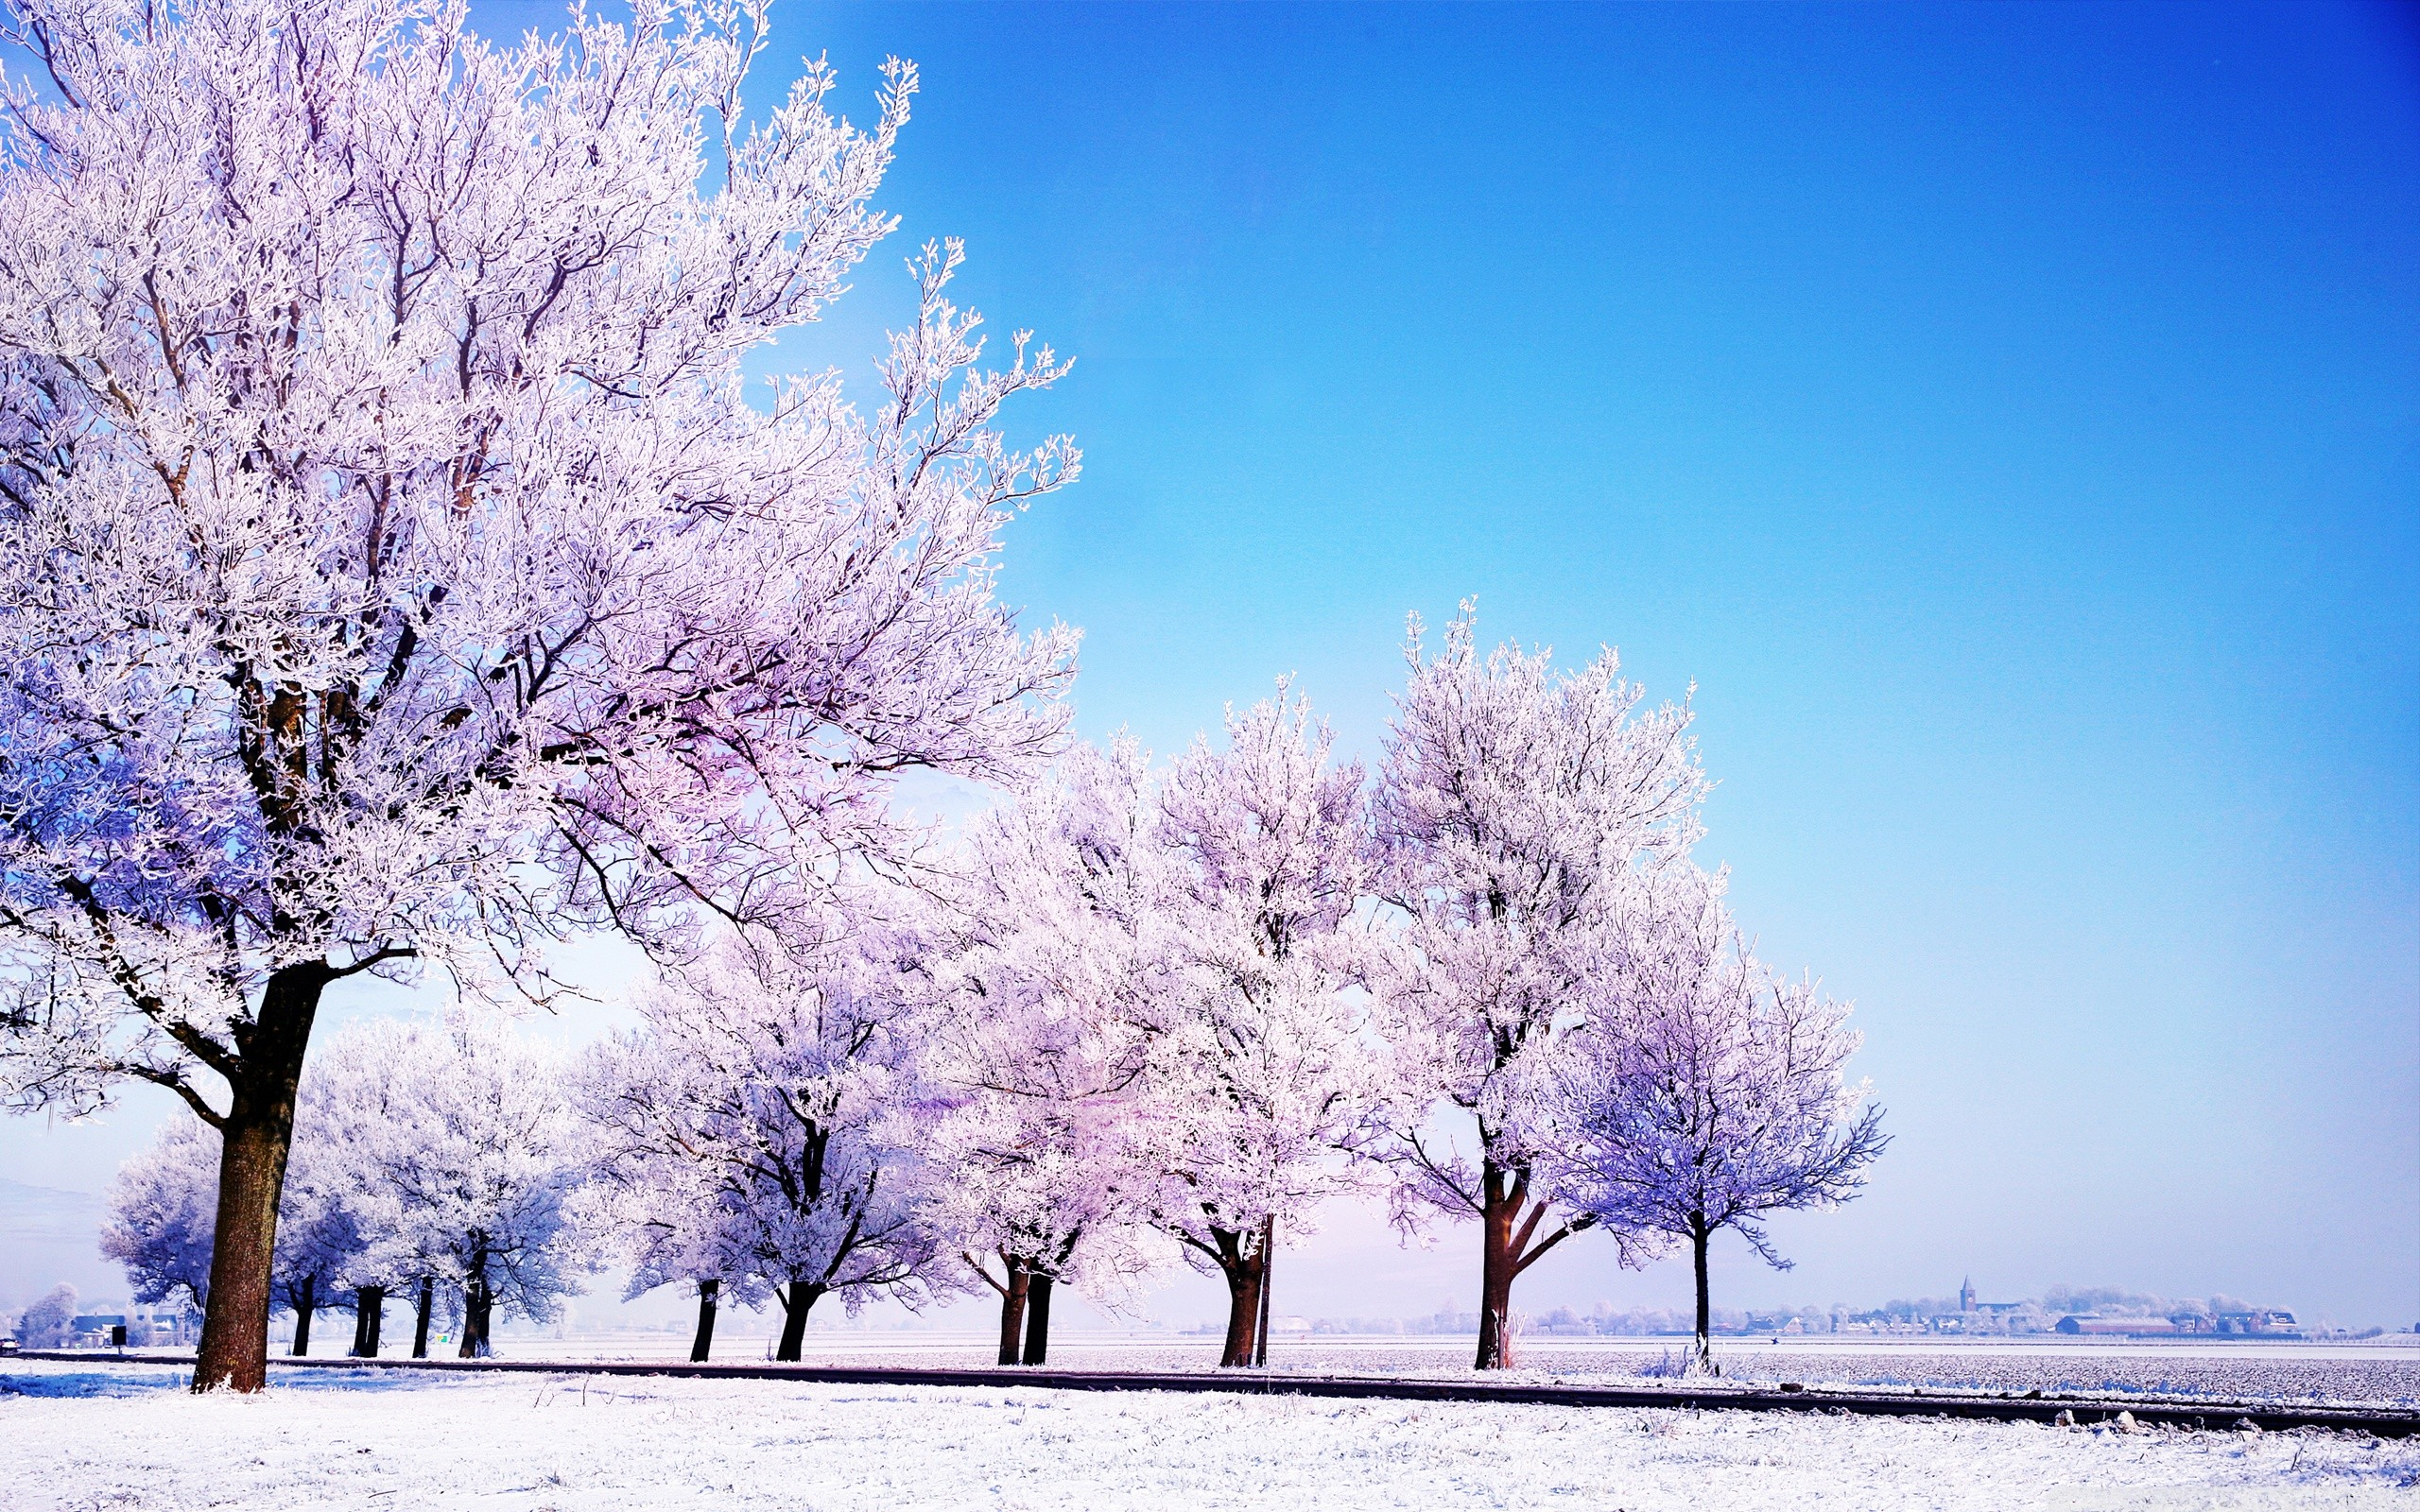 71 winter backgrounds download free hd backgrounds for - Free winter wallpaper for phone ...